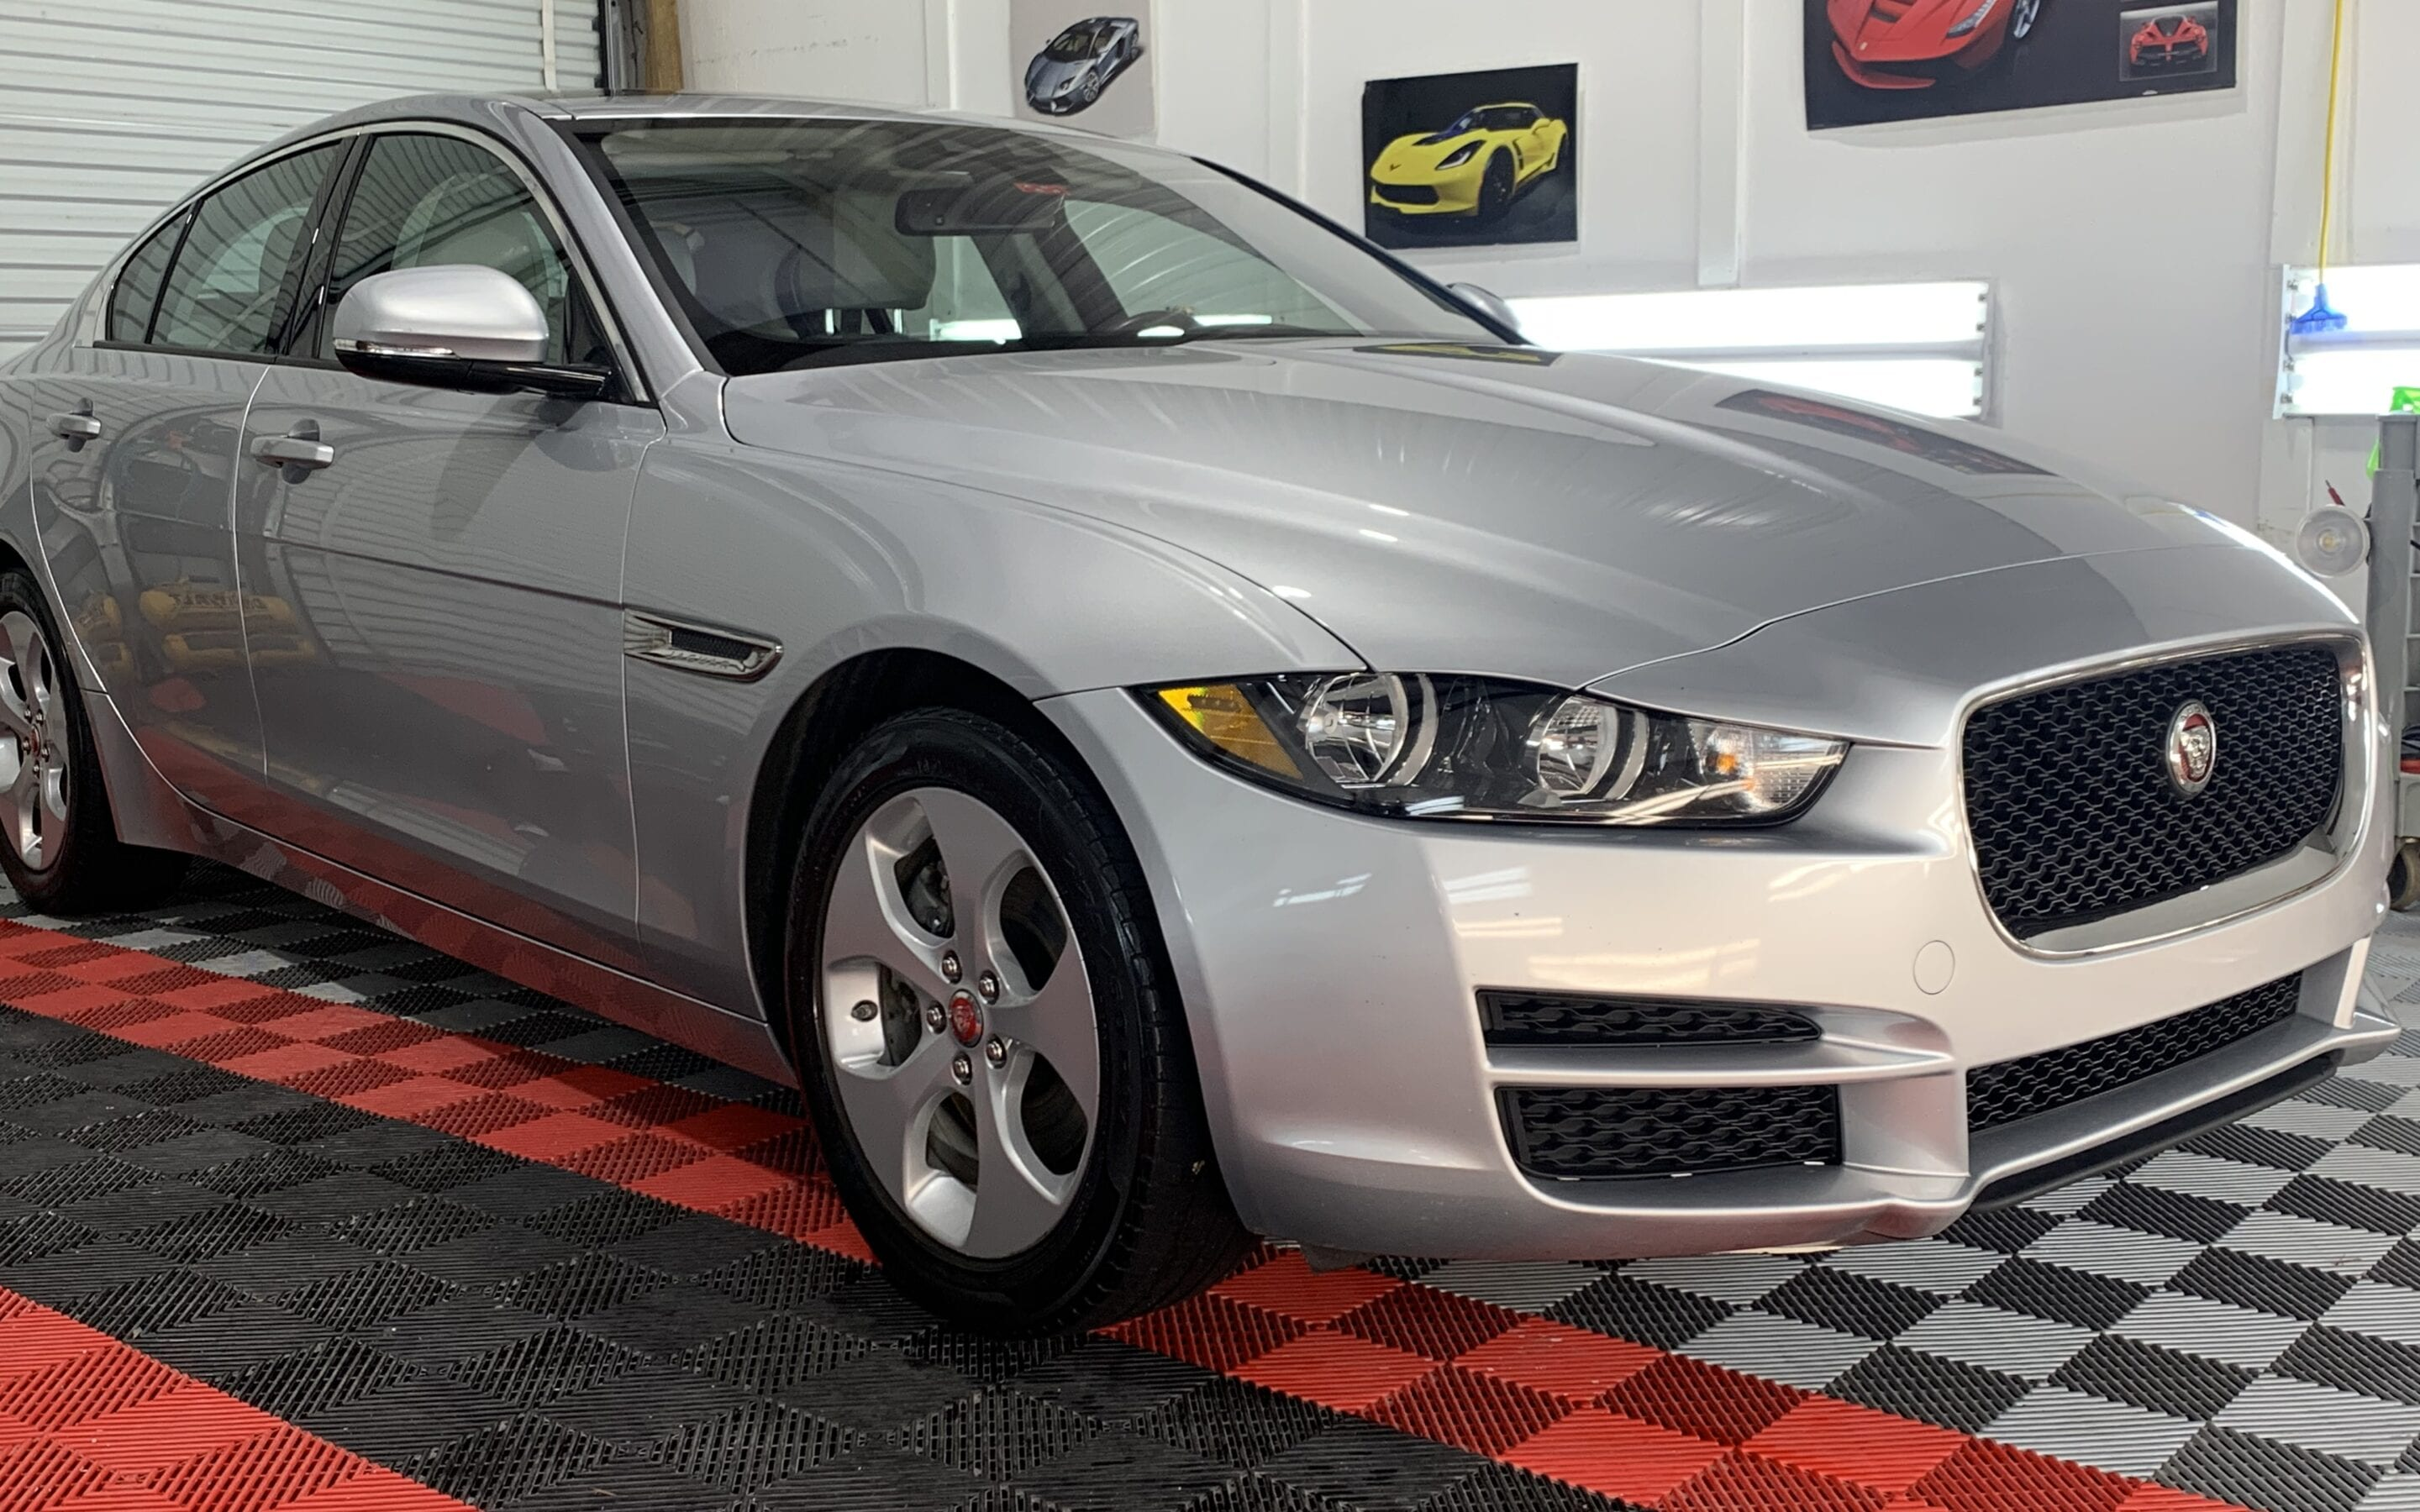 Full Detail of a 2018 Jaguar XE